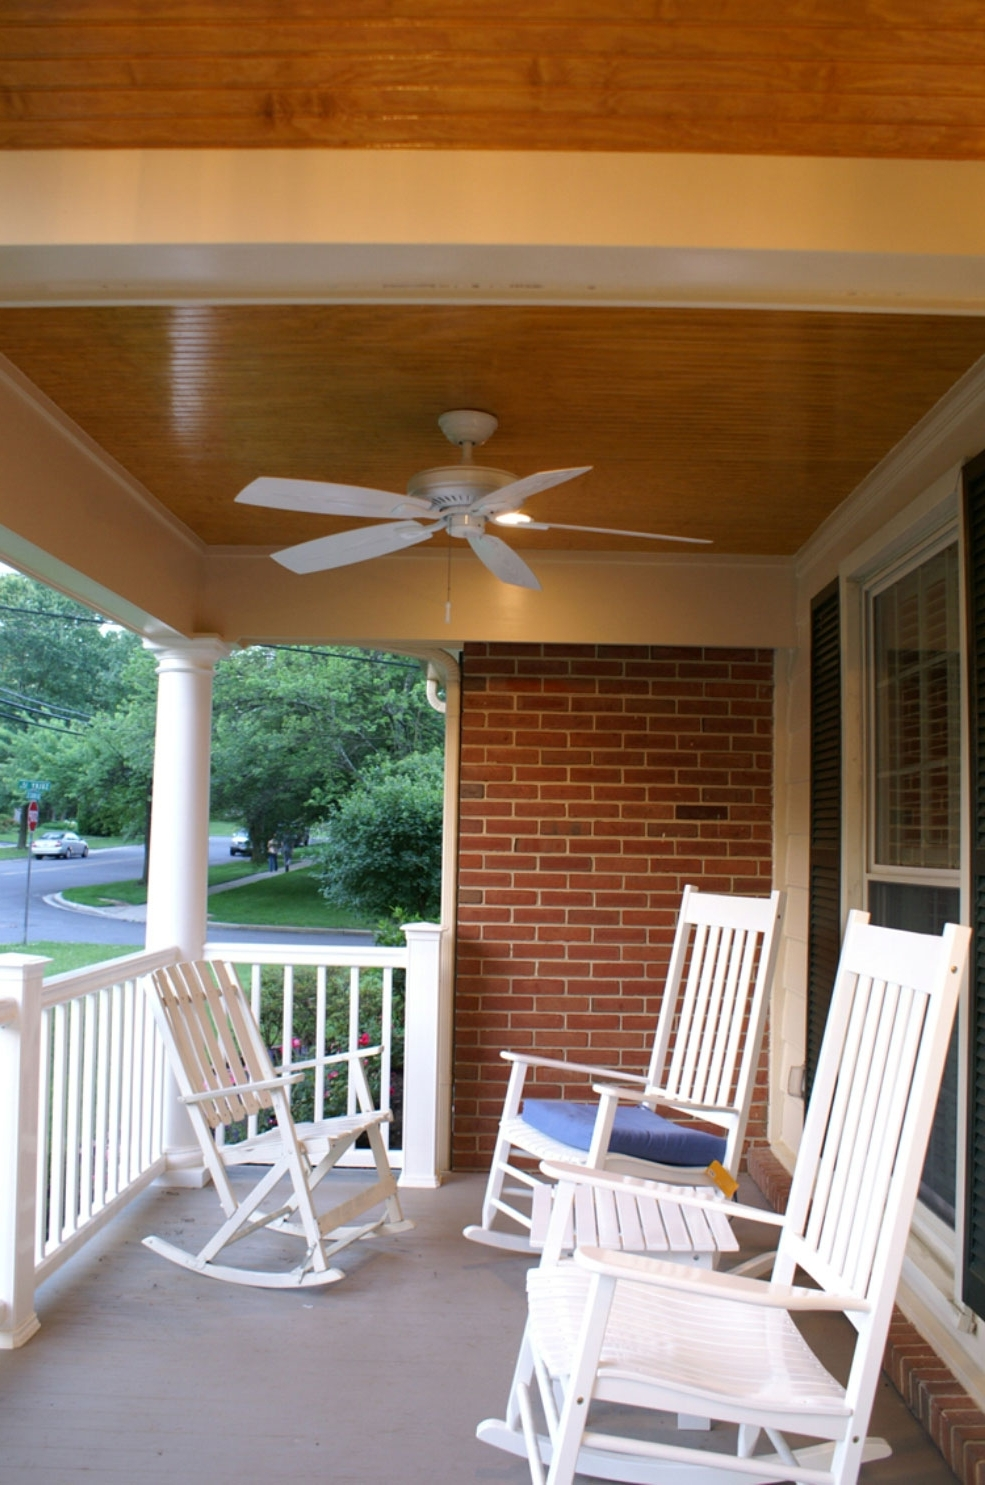 Ceiling: Glamorous Outdoor Ceiling Fans Without Lights Lowes Ceiling Intended For Most Current Outdoor Ceiling Fans For Porches (View 8 of 20)